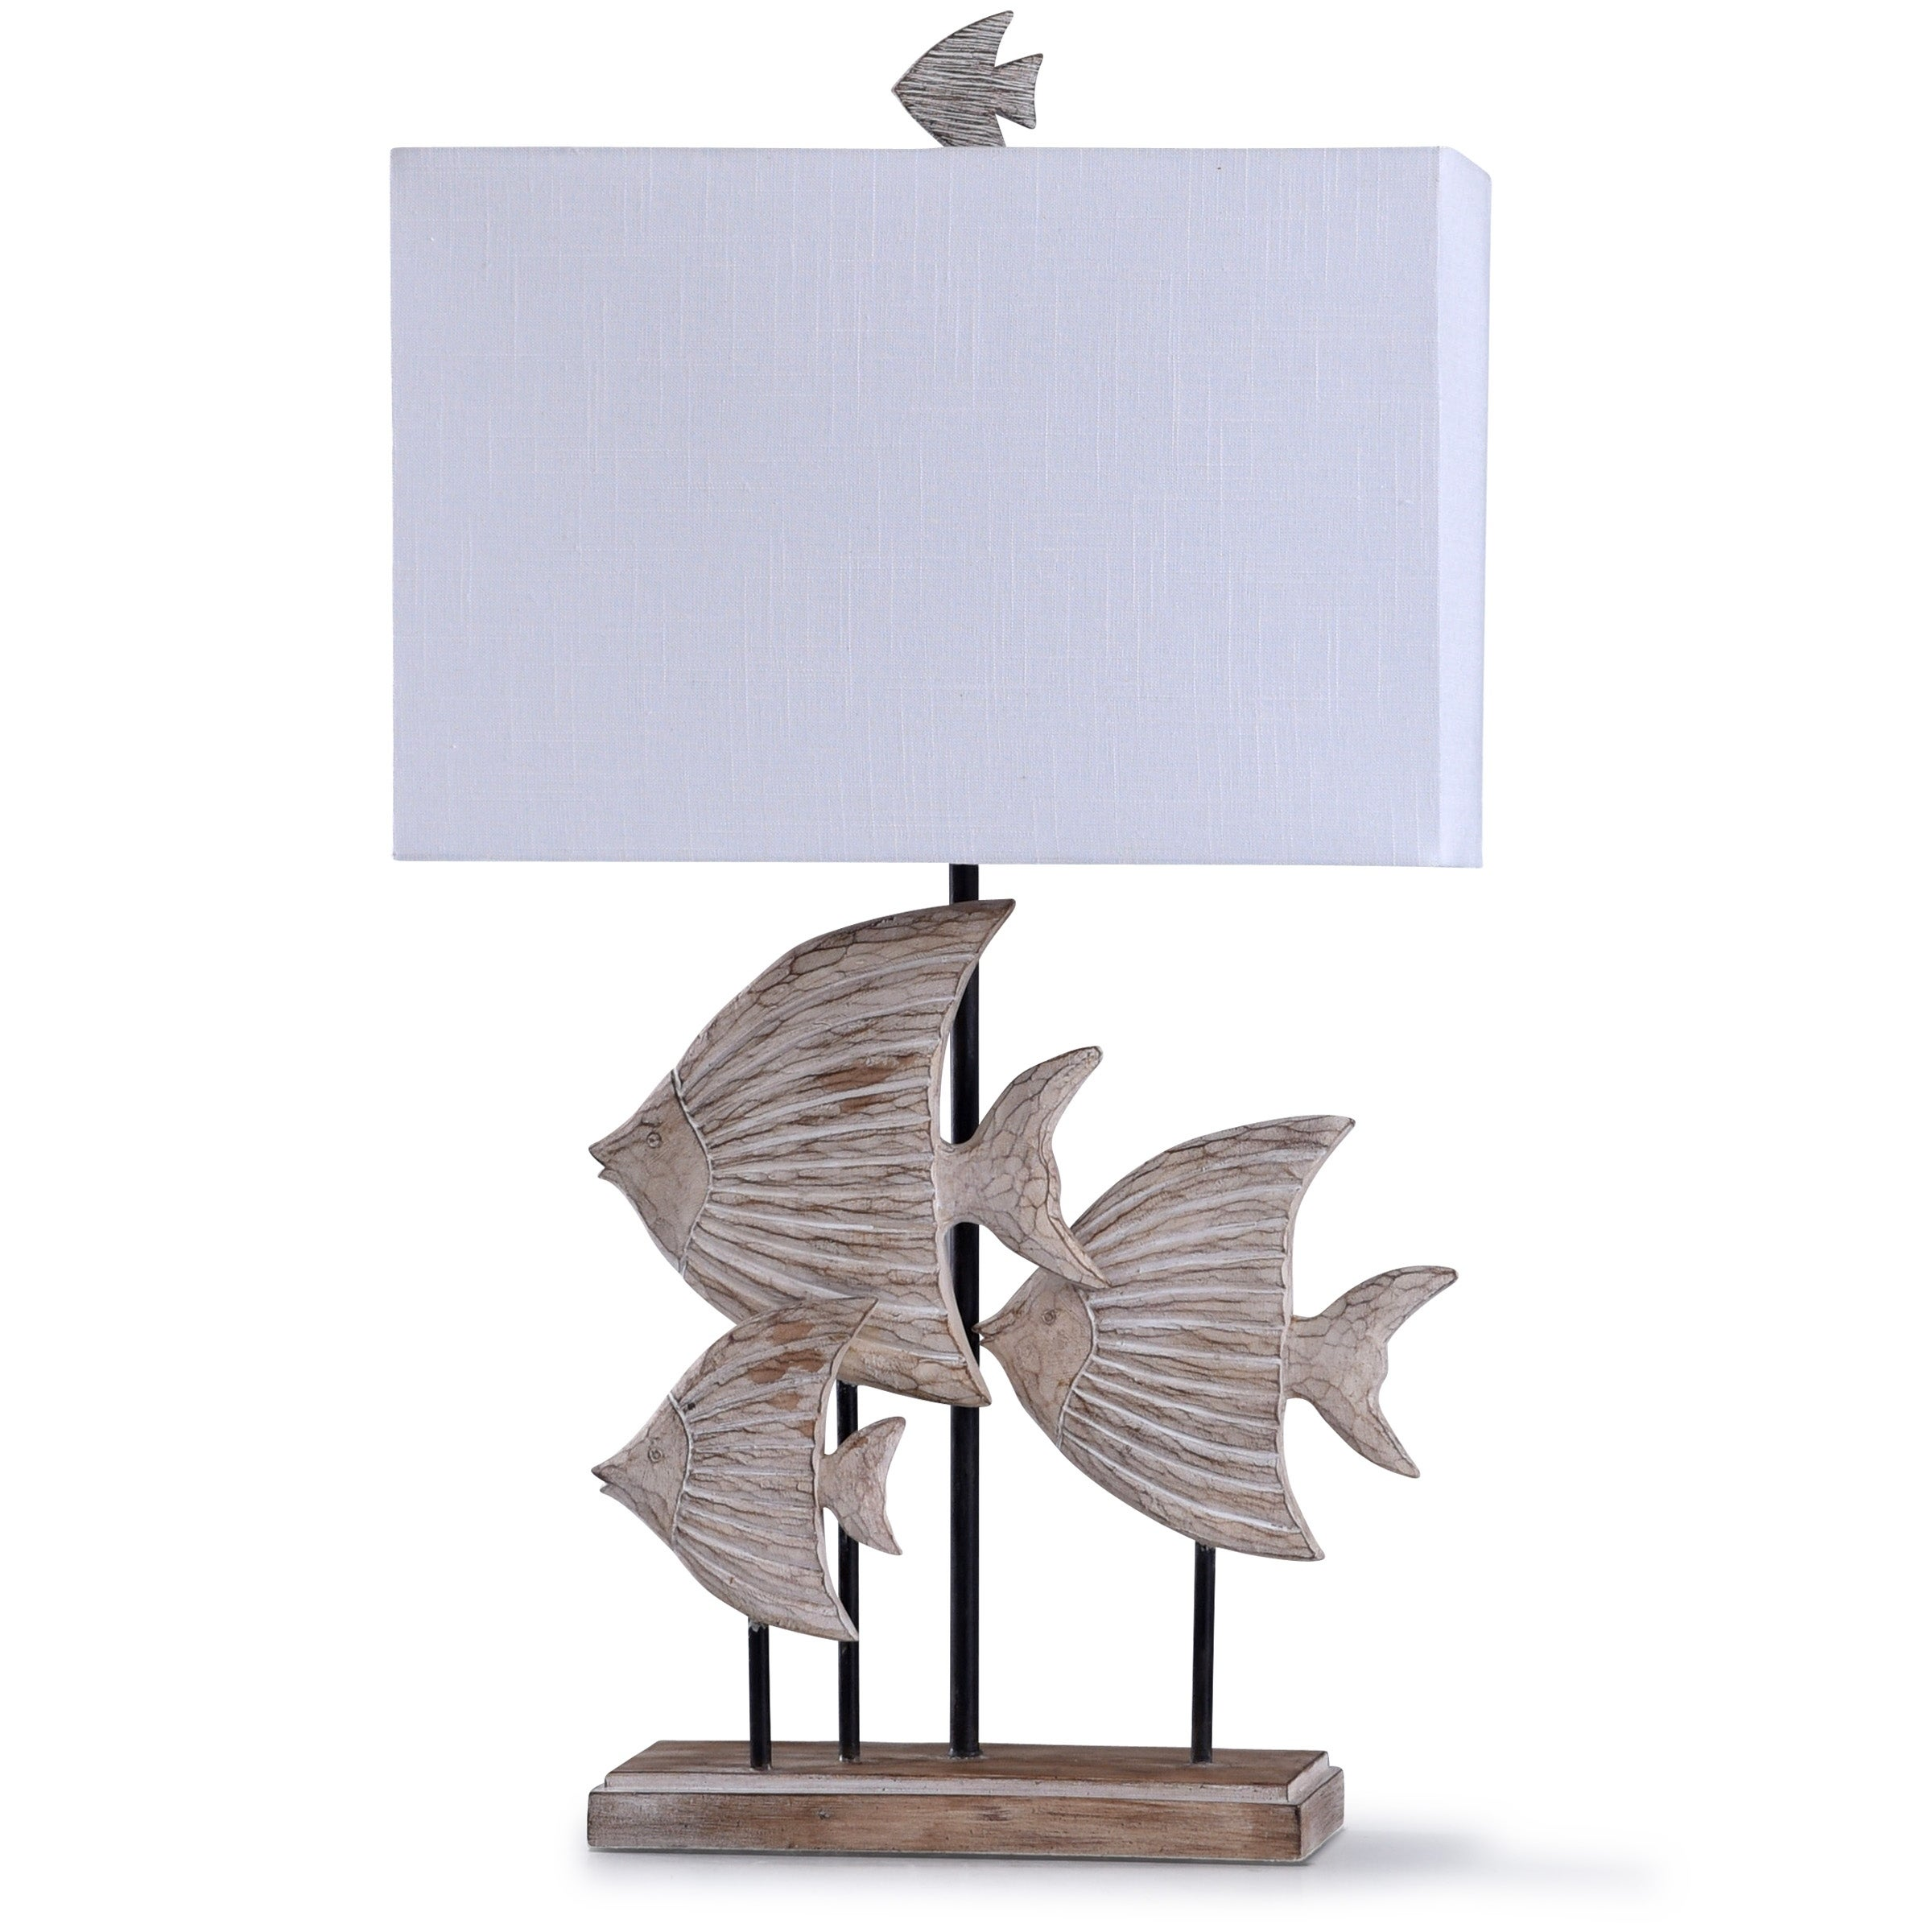 Wood Carved Fishes Table Lamp